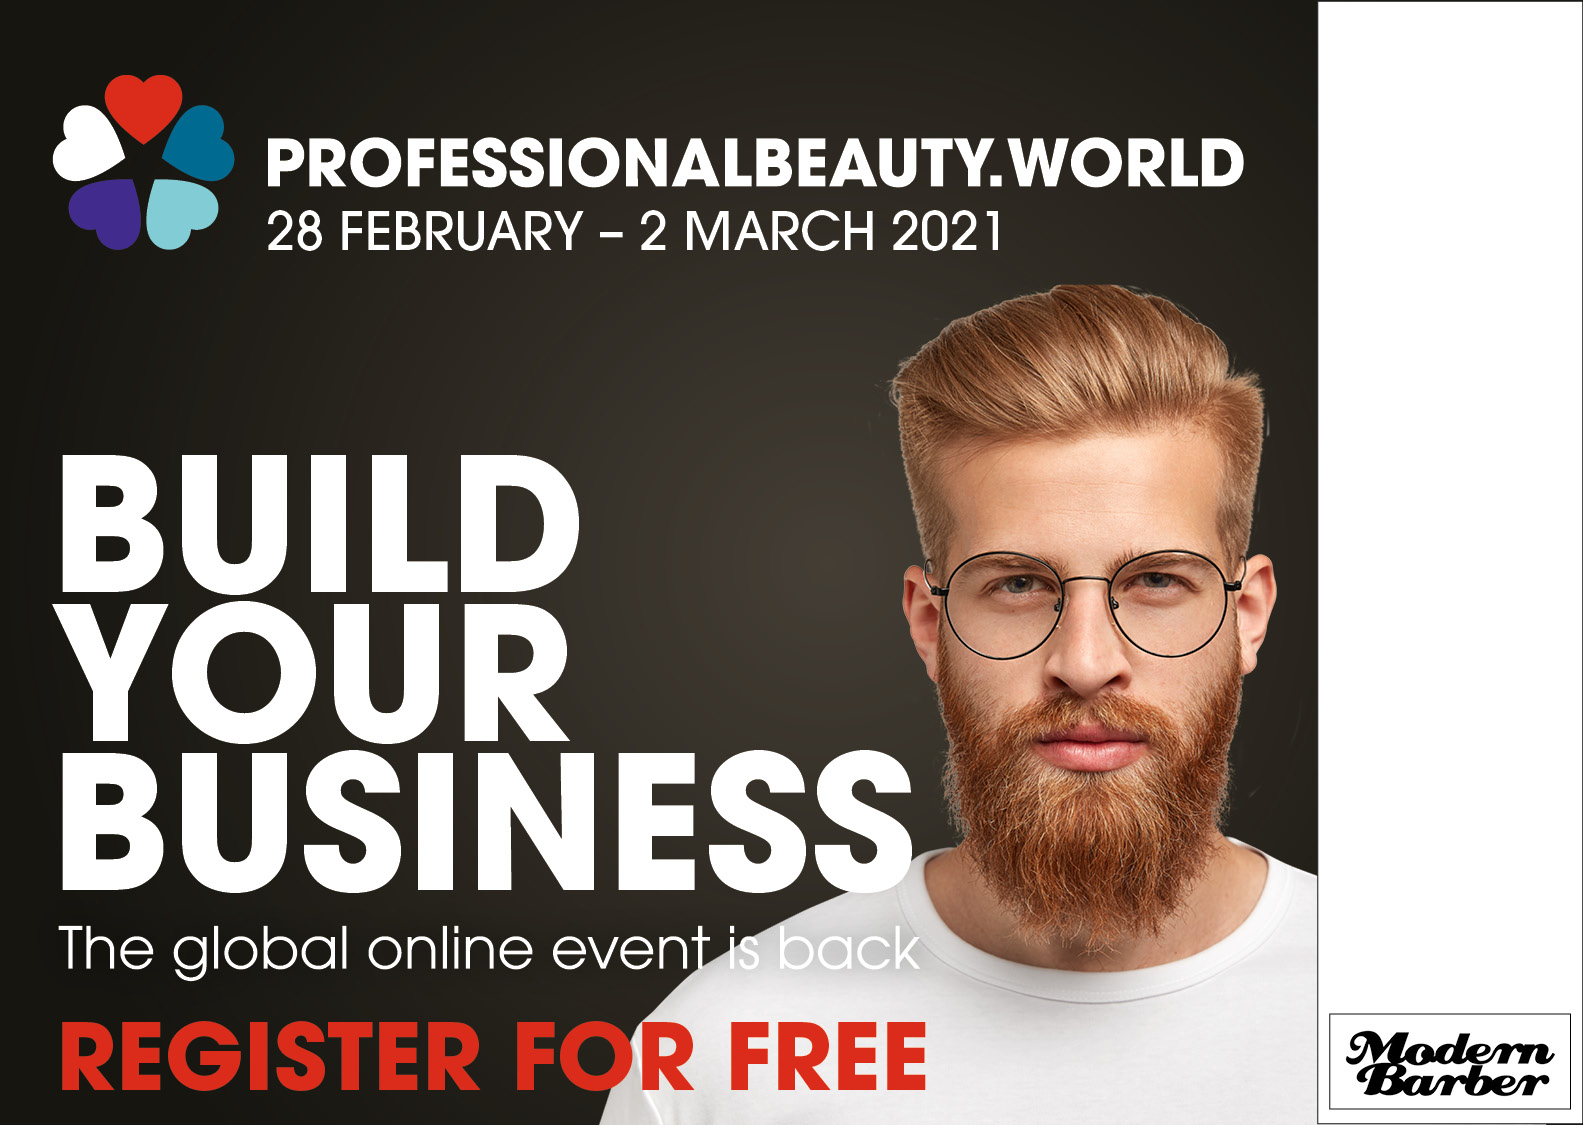 professional beauty world barber